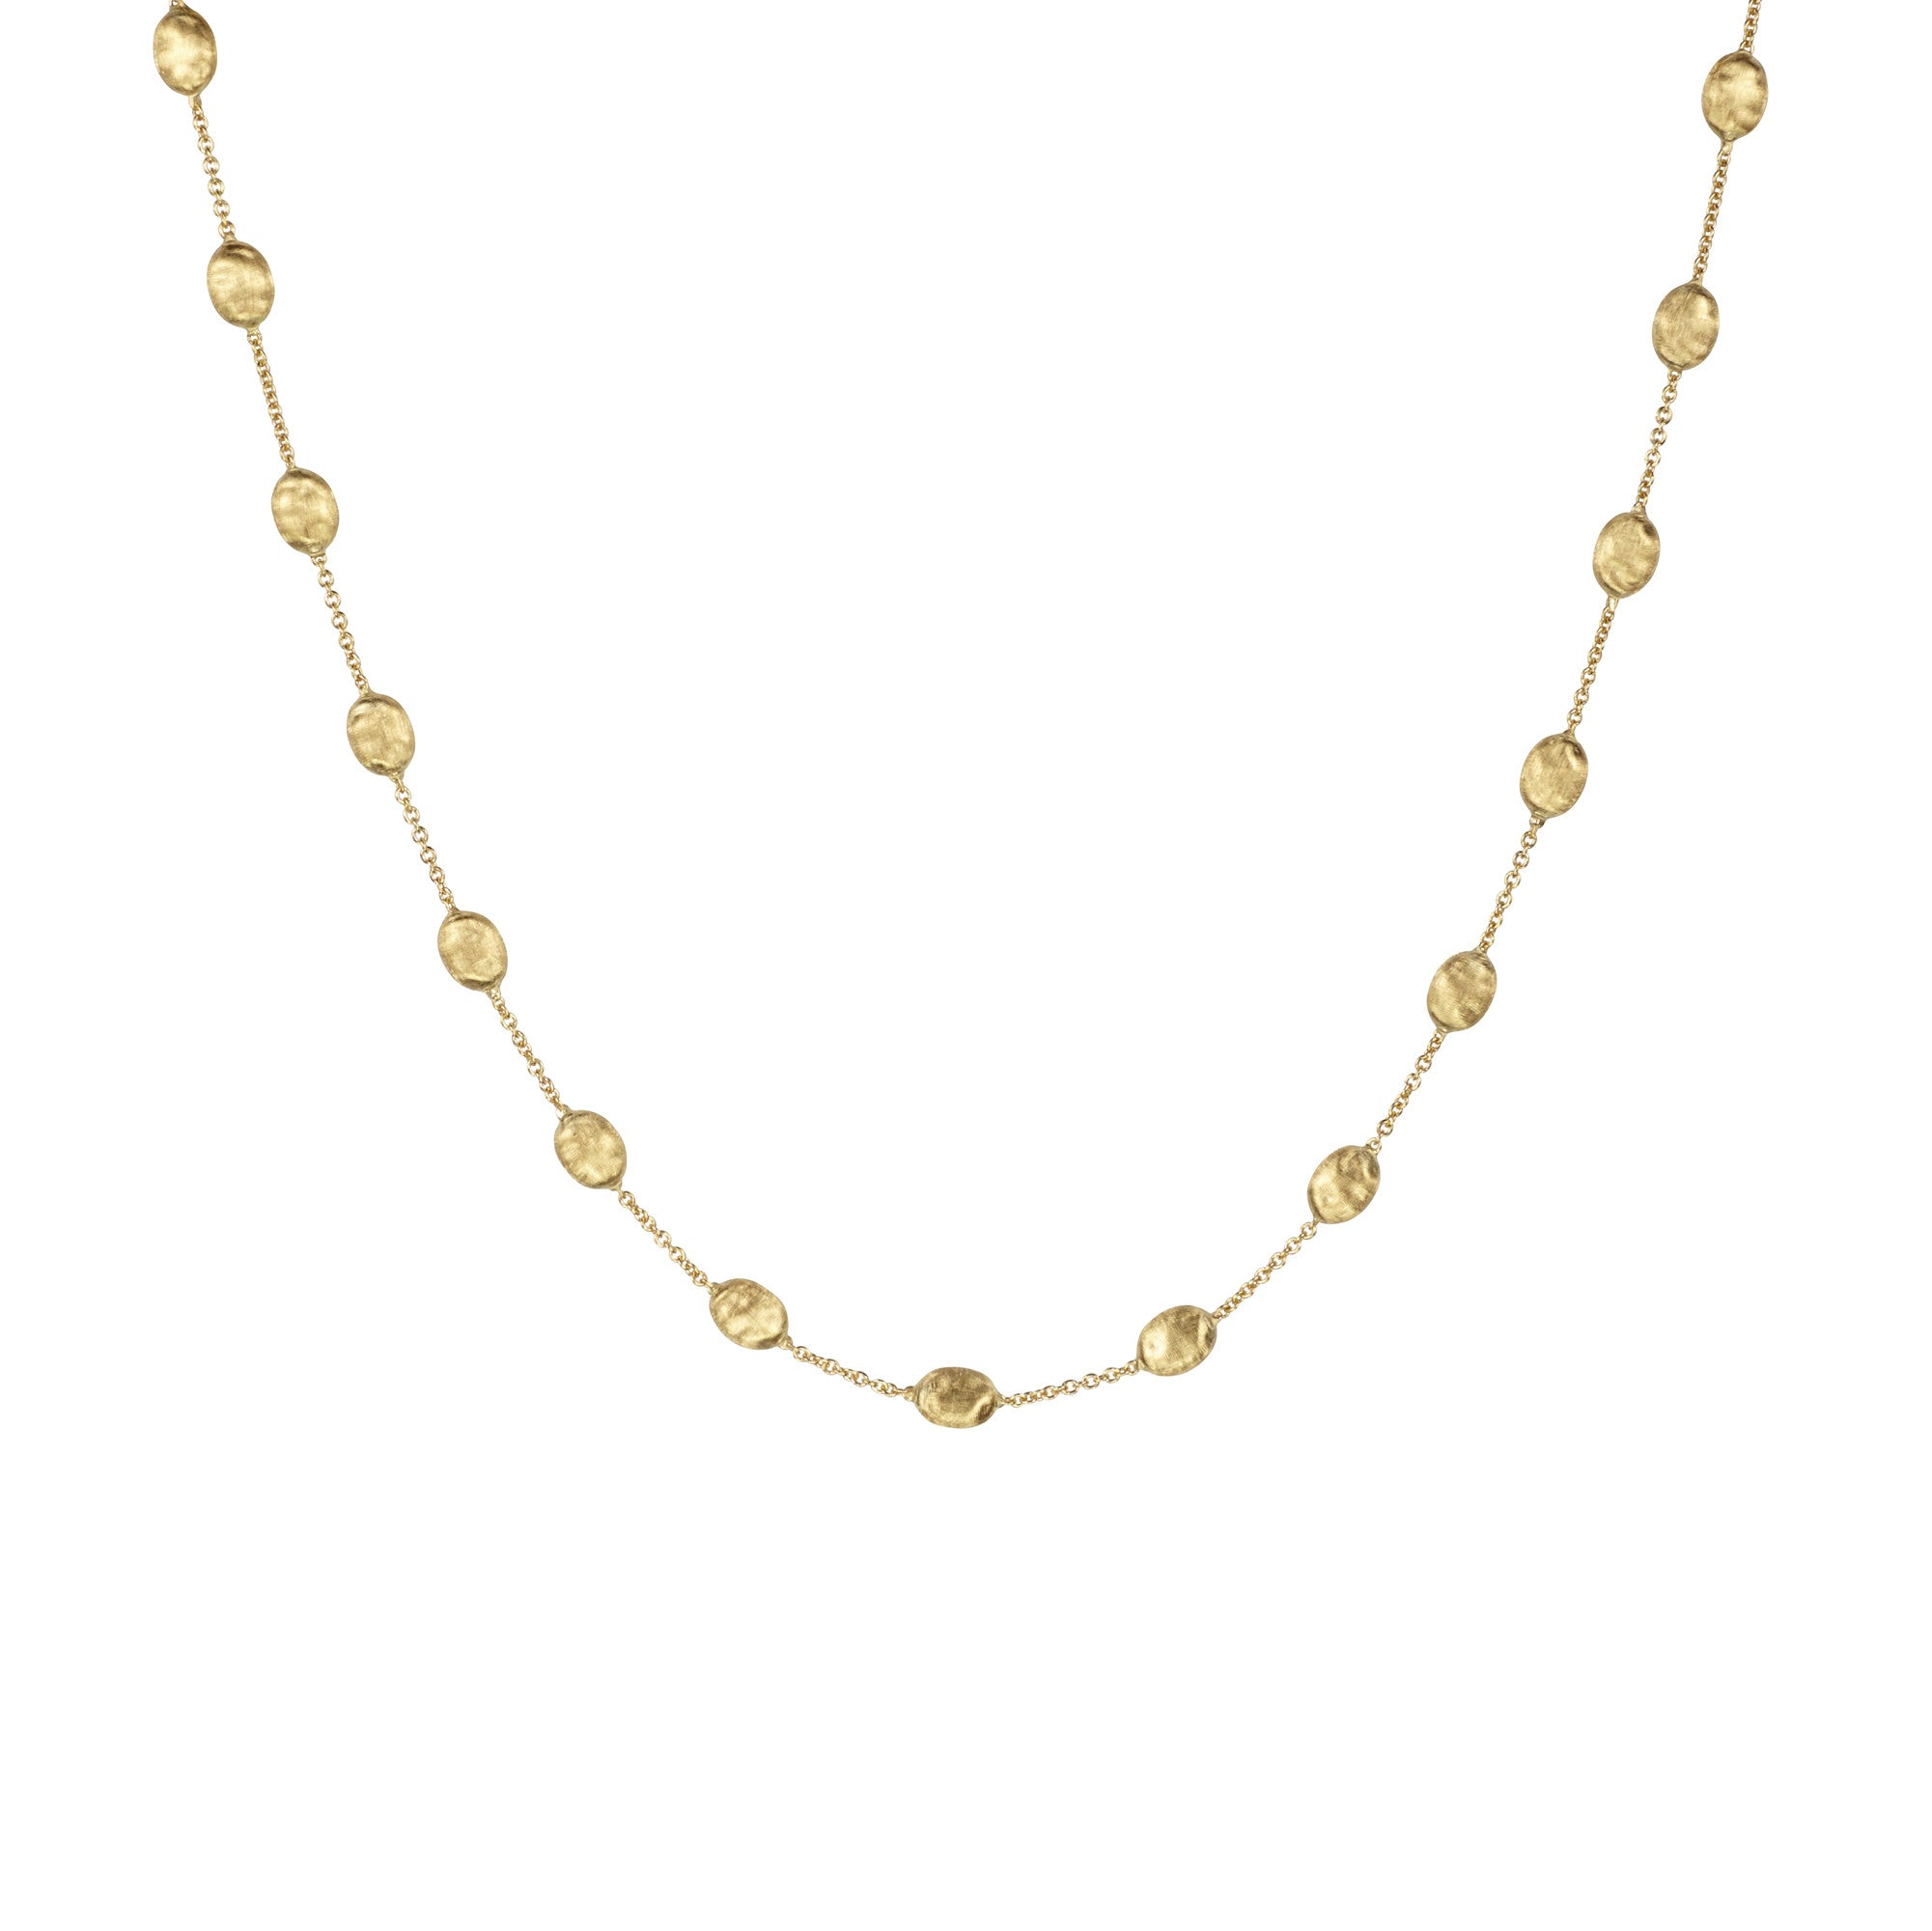 18K Yellow Gold Beaded Station Necklace